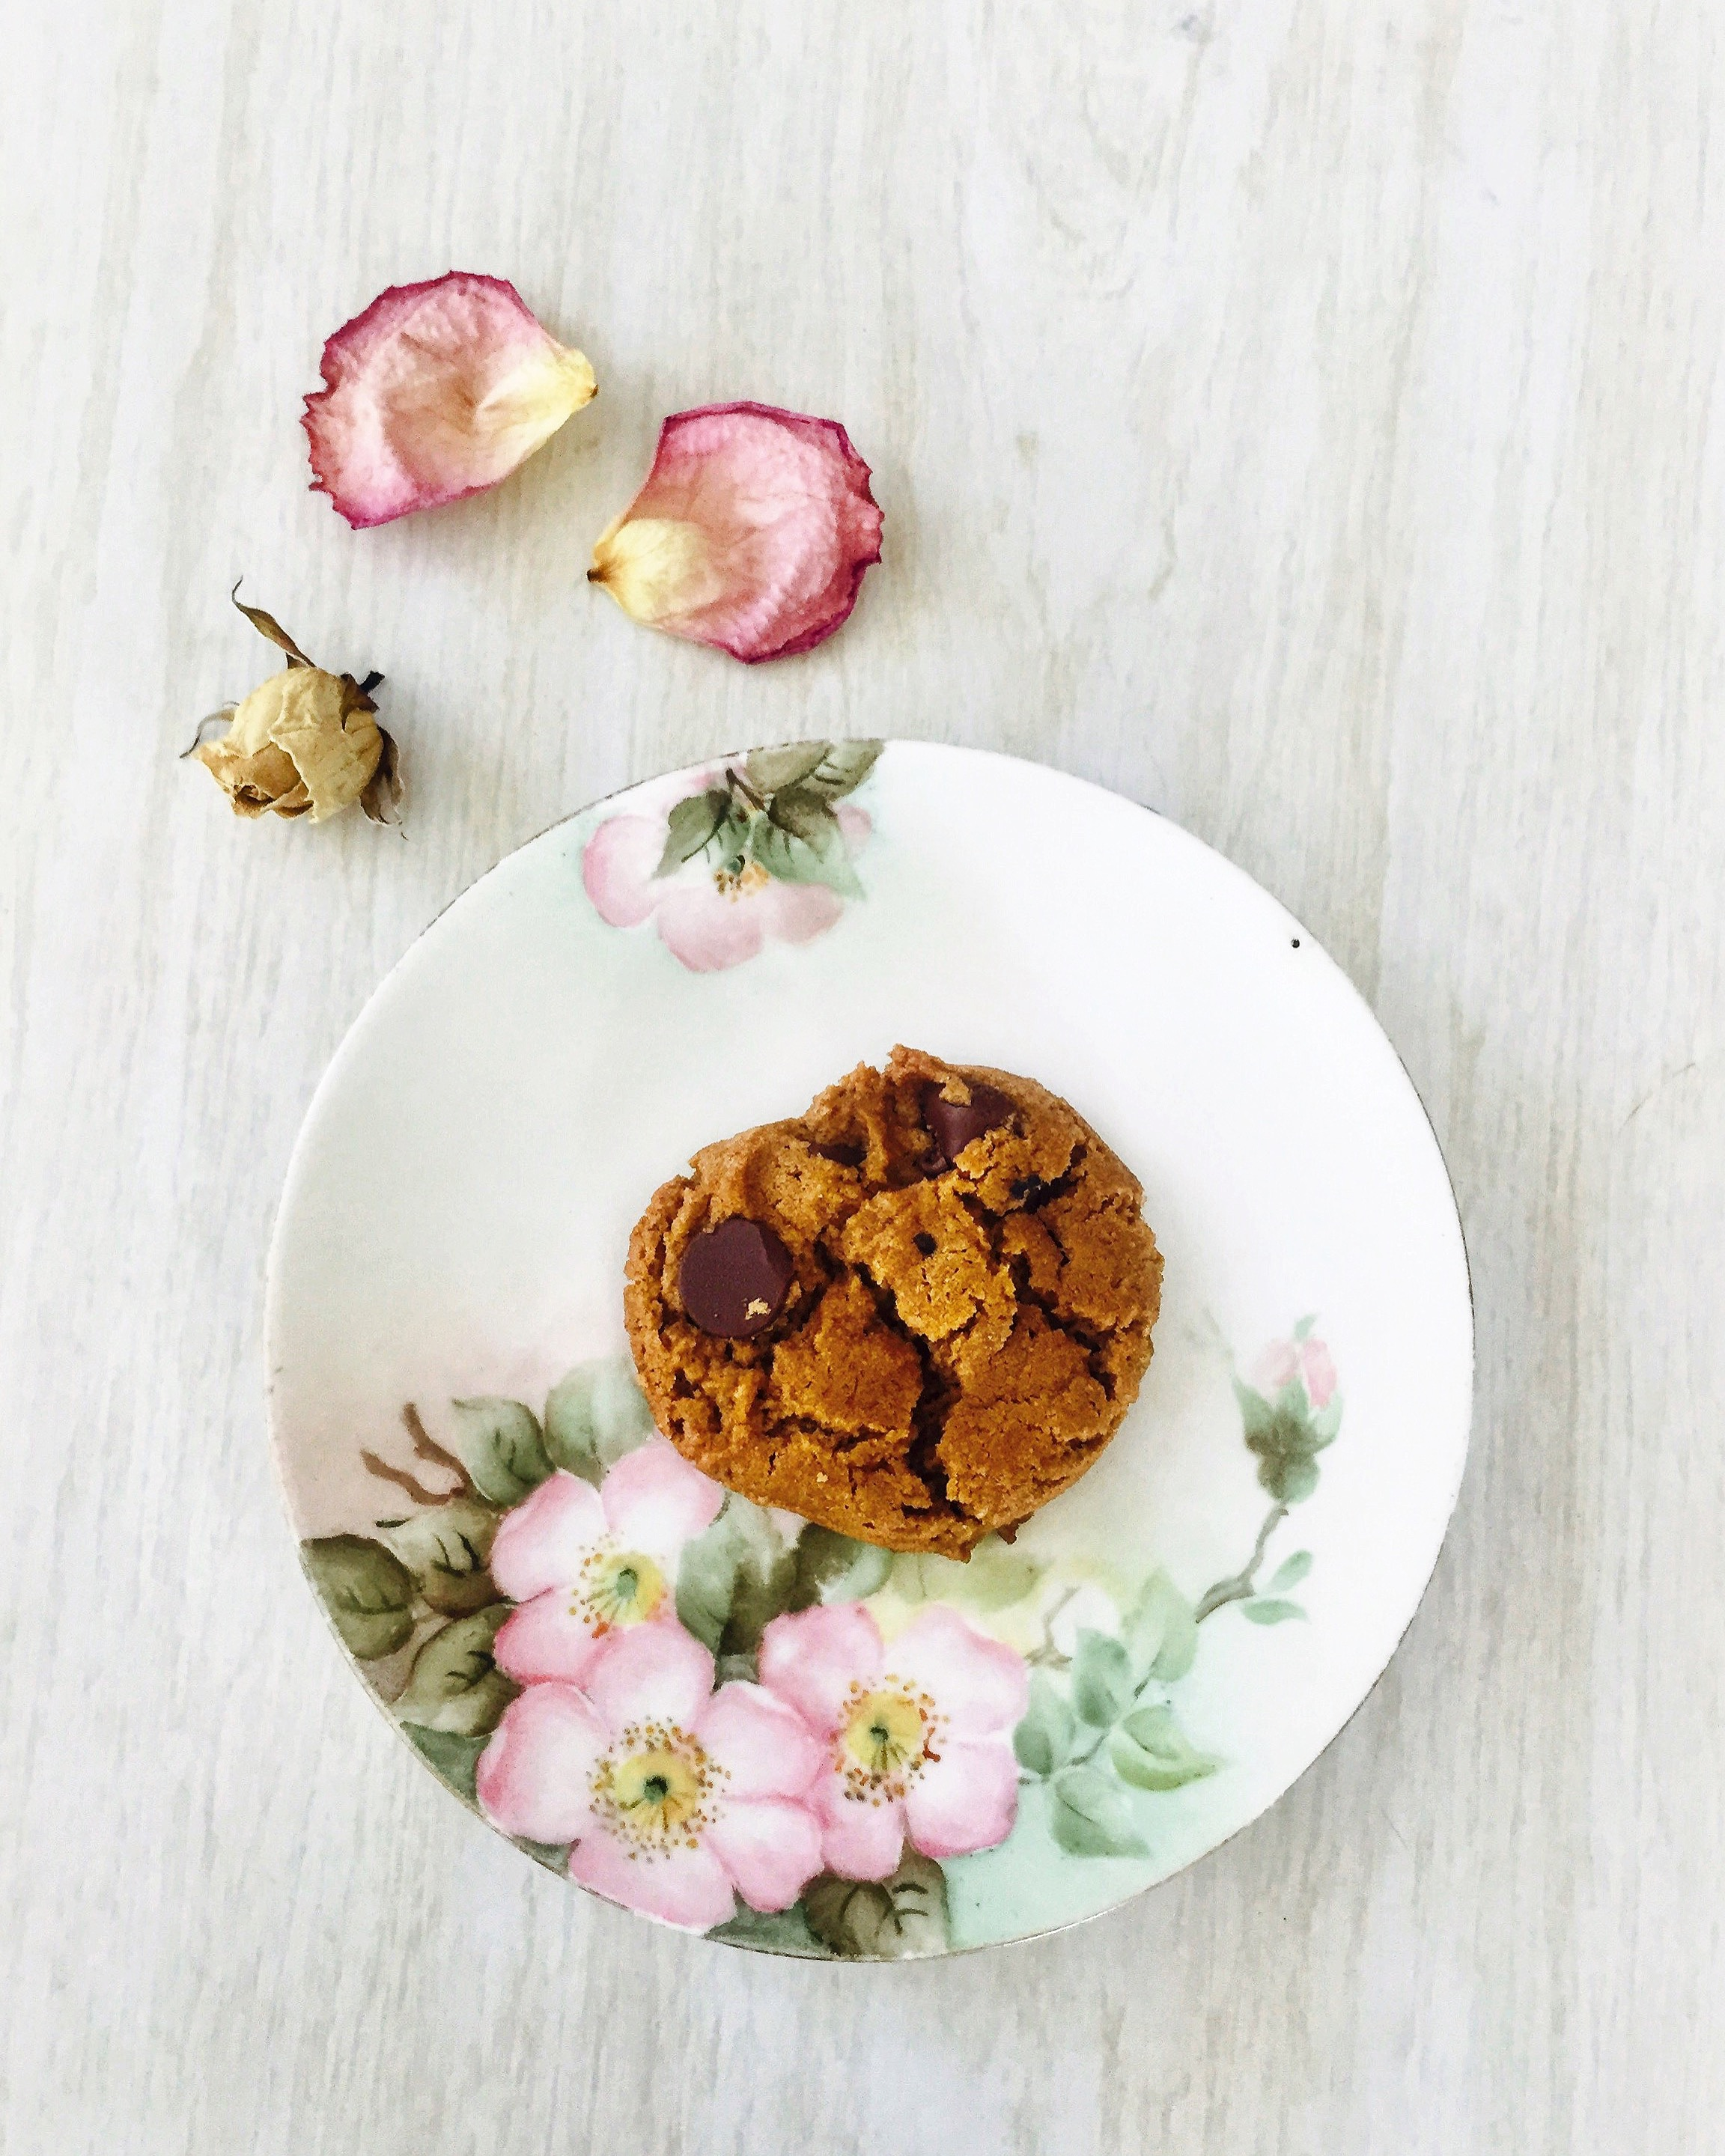 Gluten-free peanut butter, chocolate chip cookie recipe is the May 2019 feature from the Full Moon Baking Club.